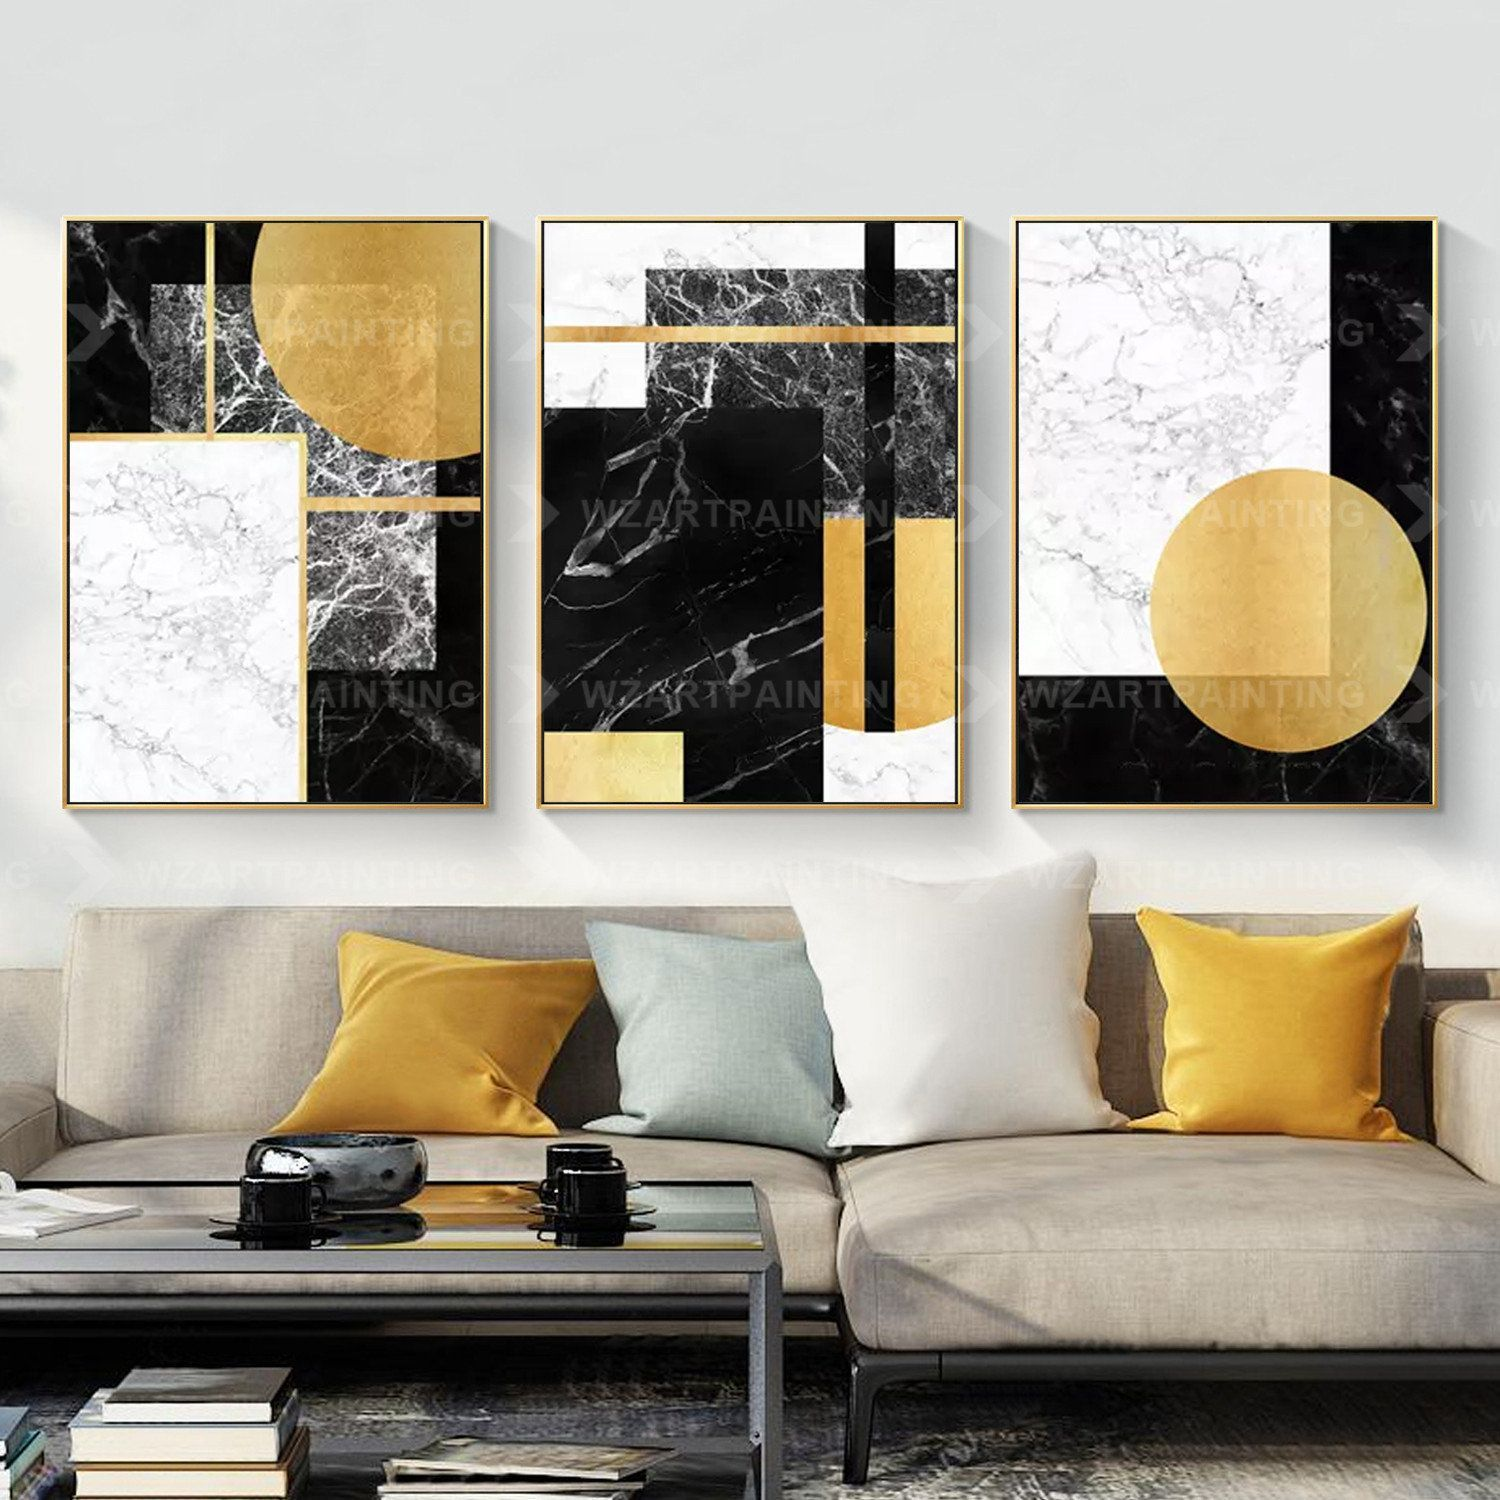 3 pieces geometric gold black abstract print on canvas framed acrylic painting wall art pictures ready to gerahmte wand wandkunst wohnzimmer acrylbilder abstrakt abstrakte kunst bilder schwarz weiß